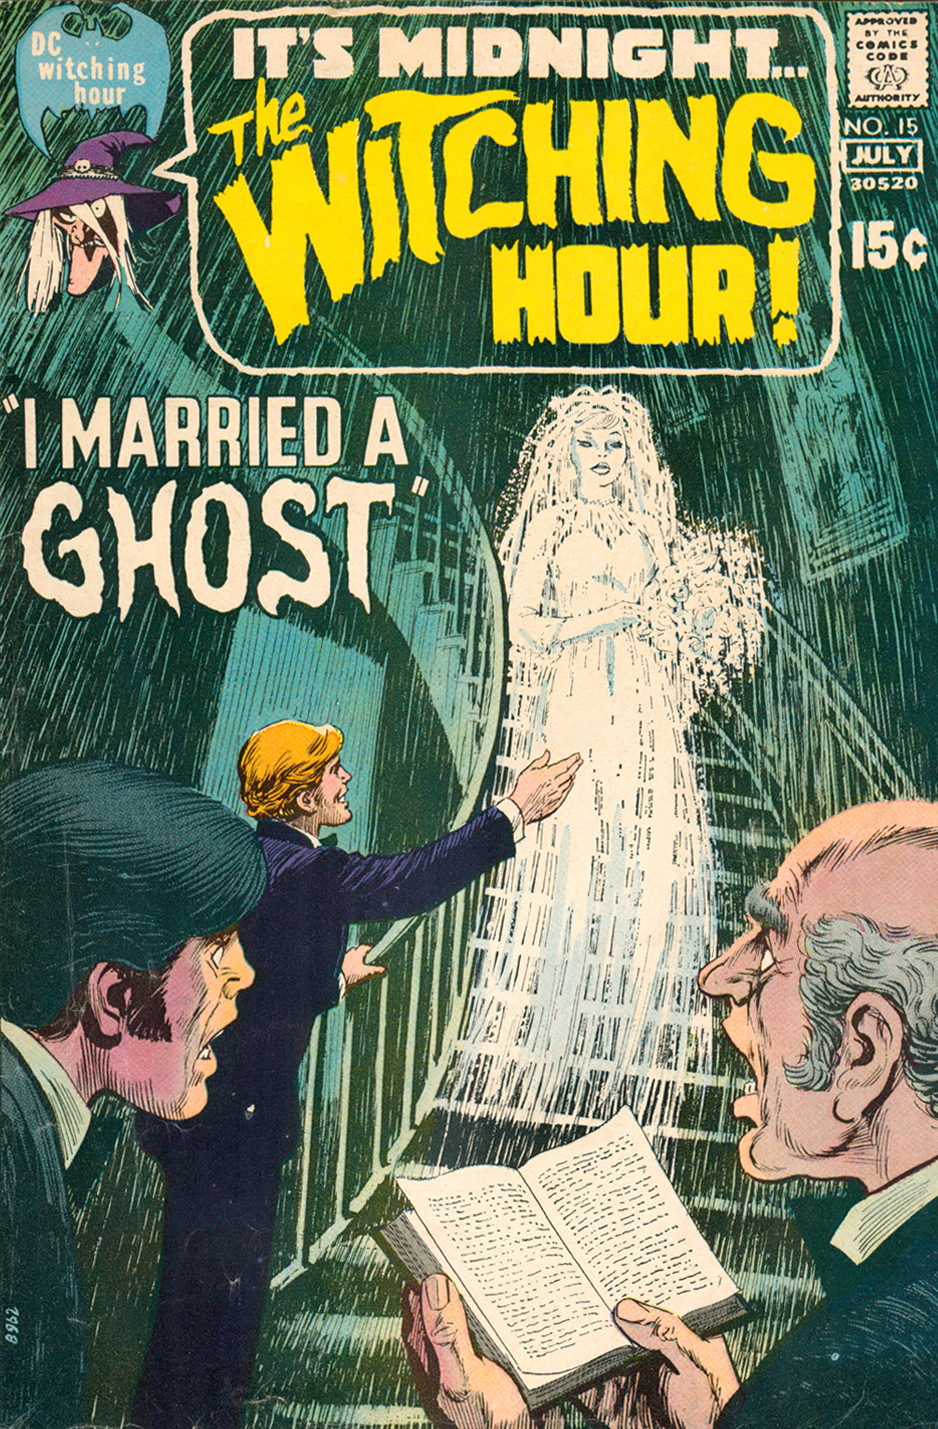 Cover art by Nick Cardy  The Witching Hour  #15 (June/July 1971)